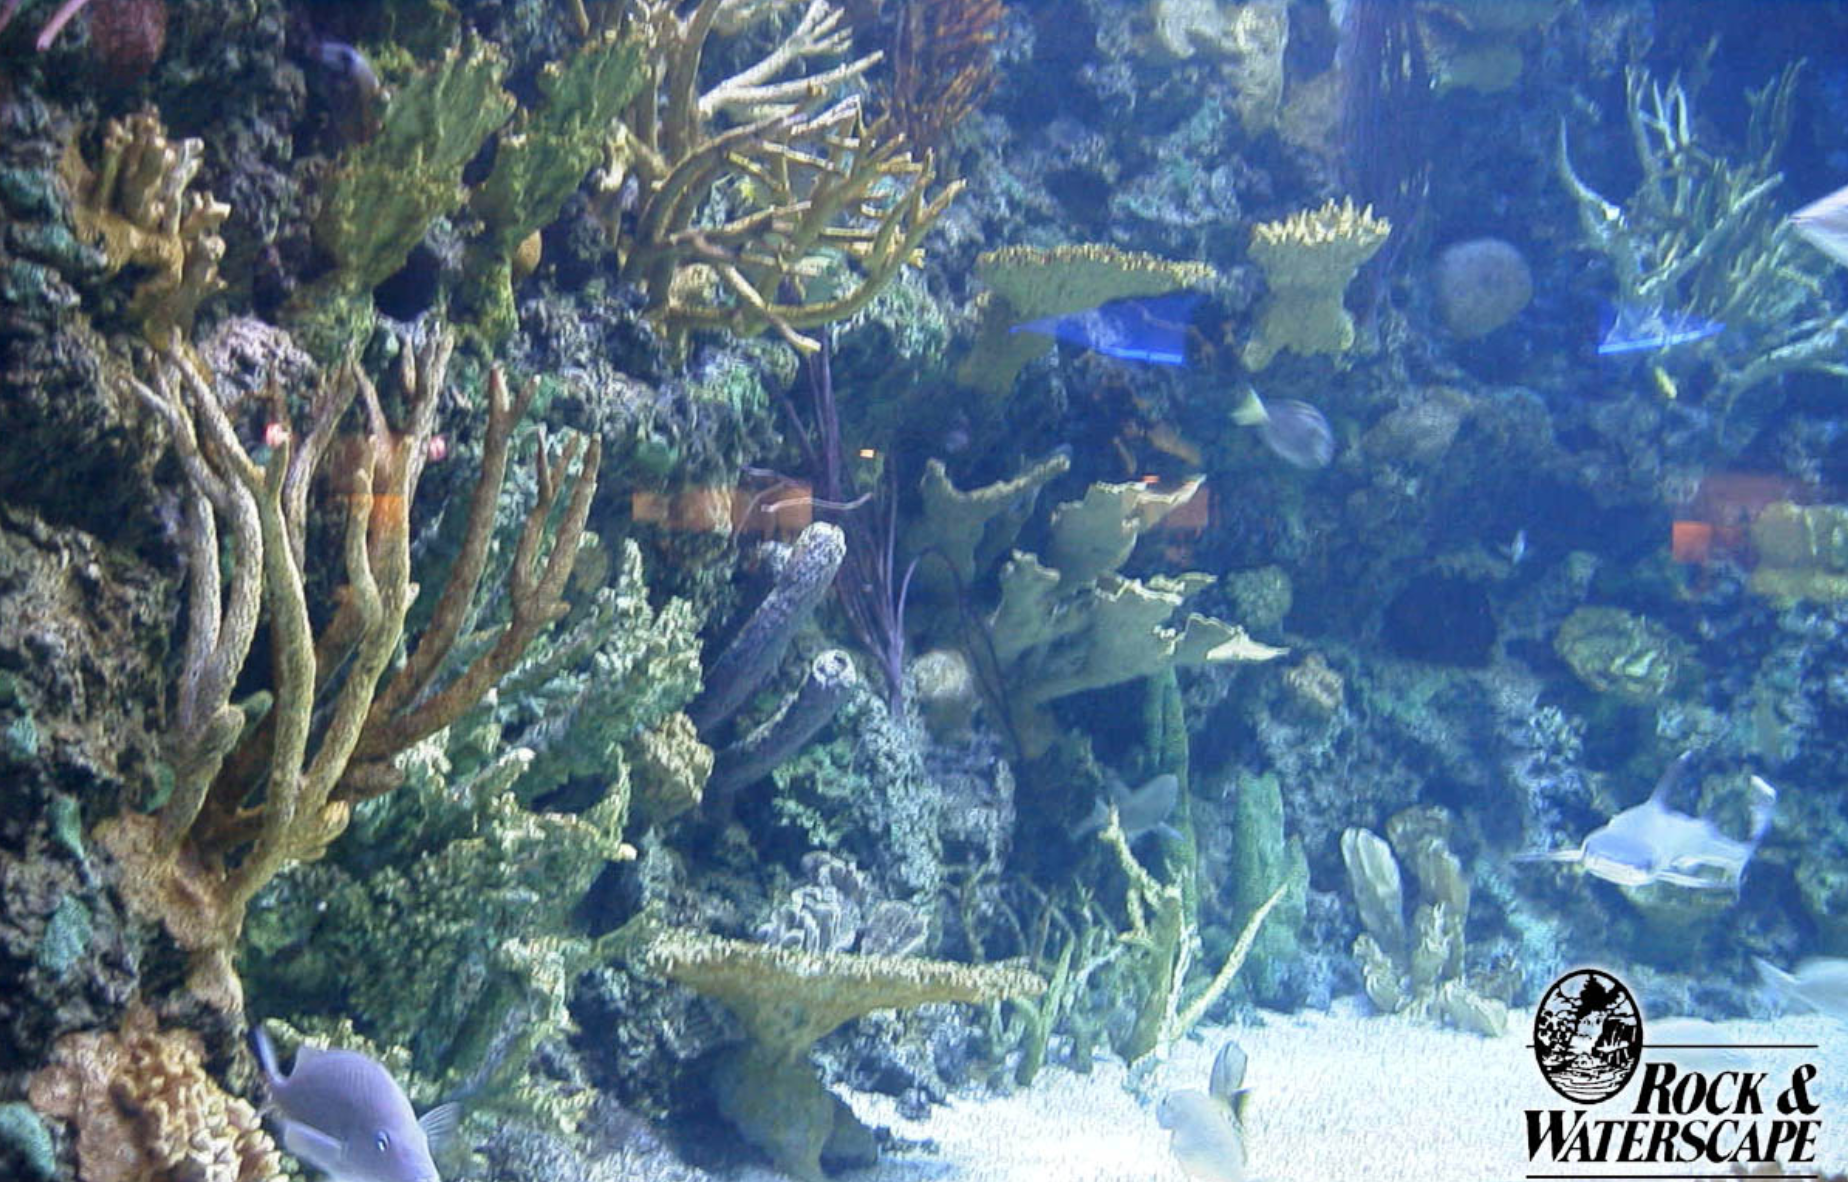 Rock & Waterscape Themed Environment Coral Reef